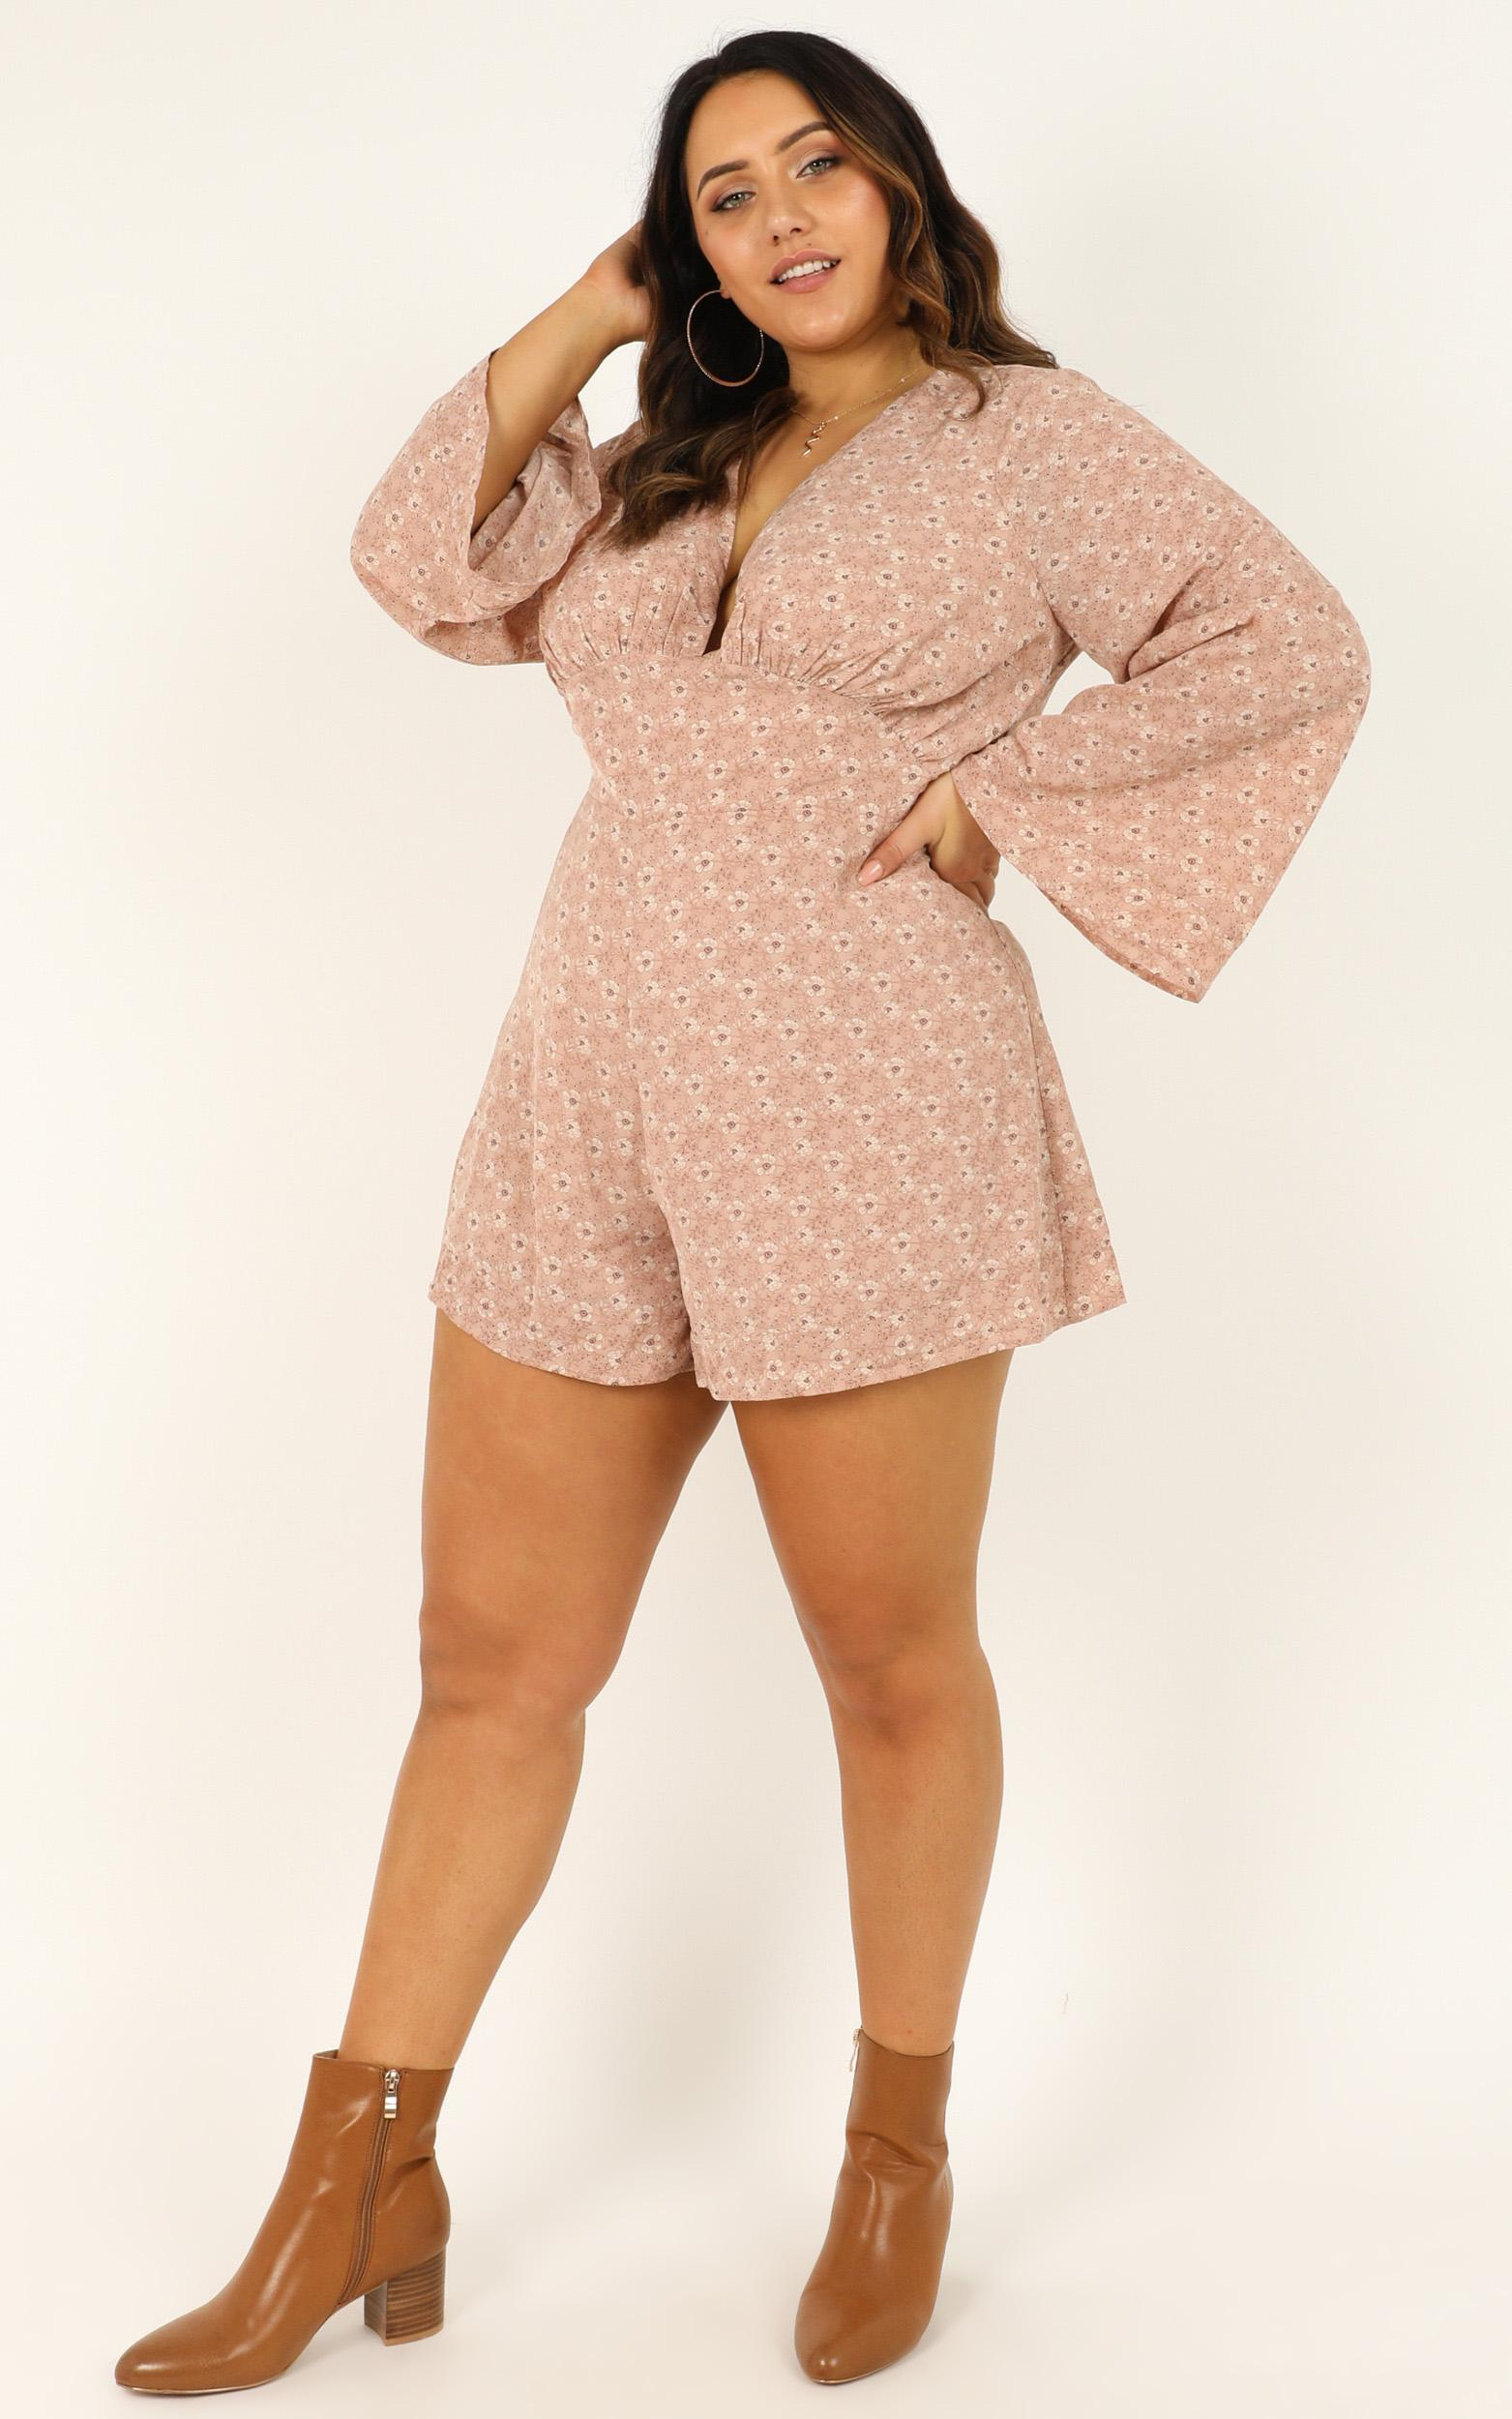 Mystery Lover Playsuit in blush floral - 20 (XXXXL), Blush, hi-res image number null